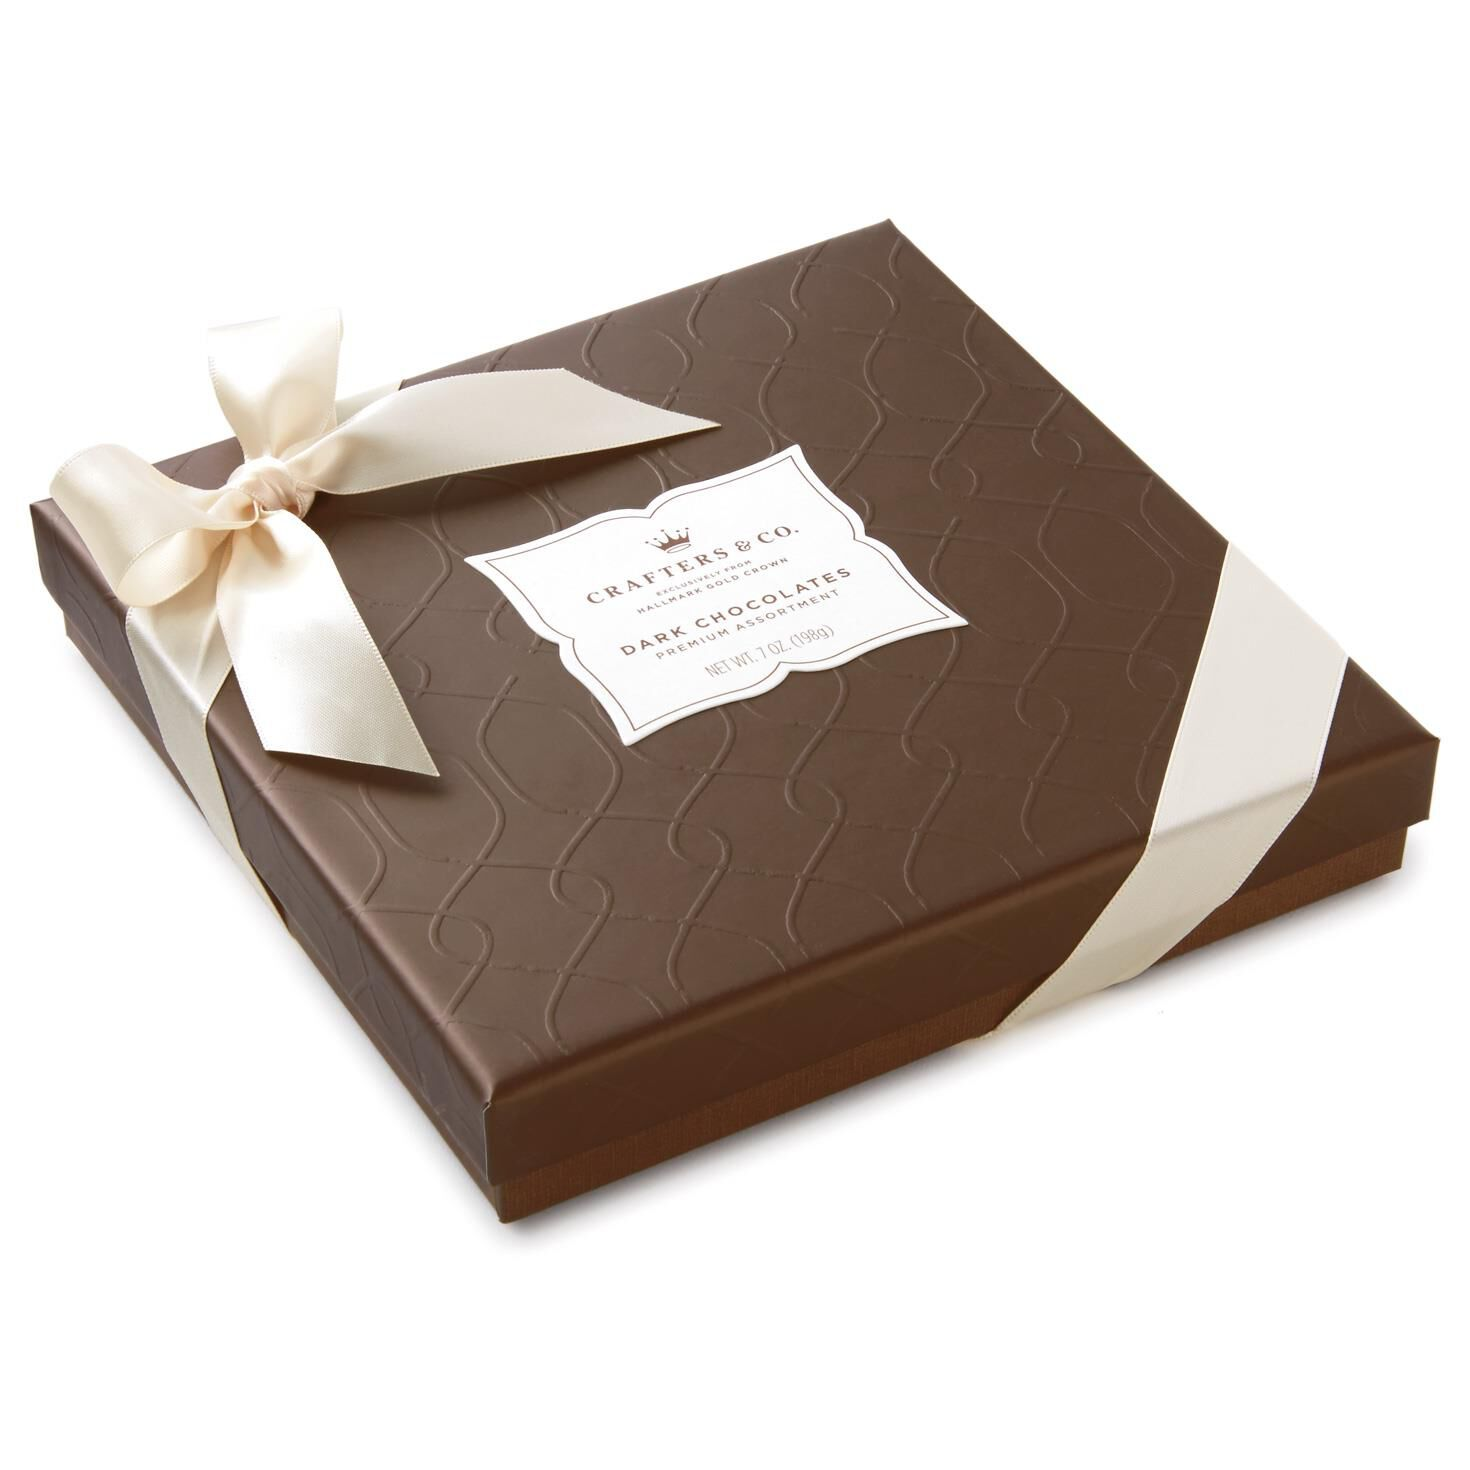 7 oz assorted dark chocolate candy in gift box candy chocolate assorted dark chocolate candy in gift box candy chocolate hallmark negle Gallery